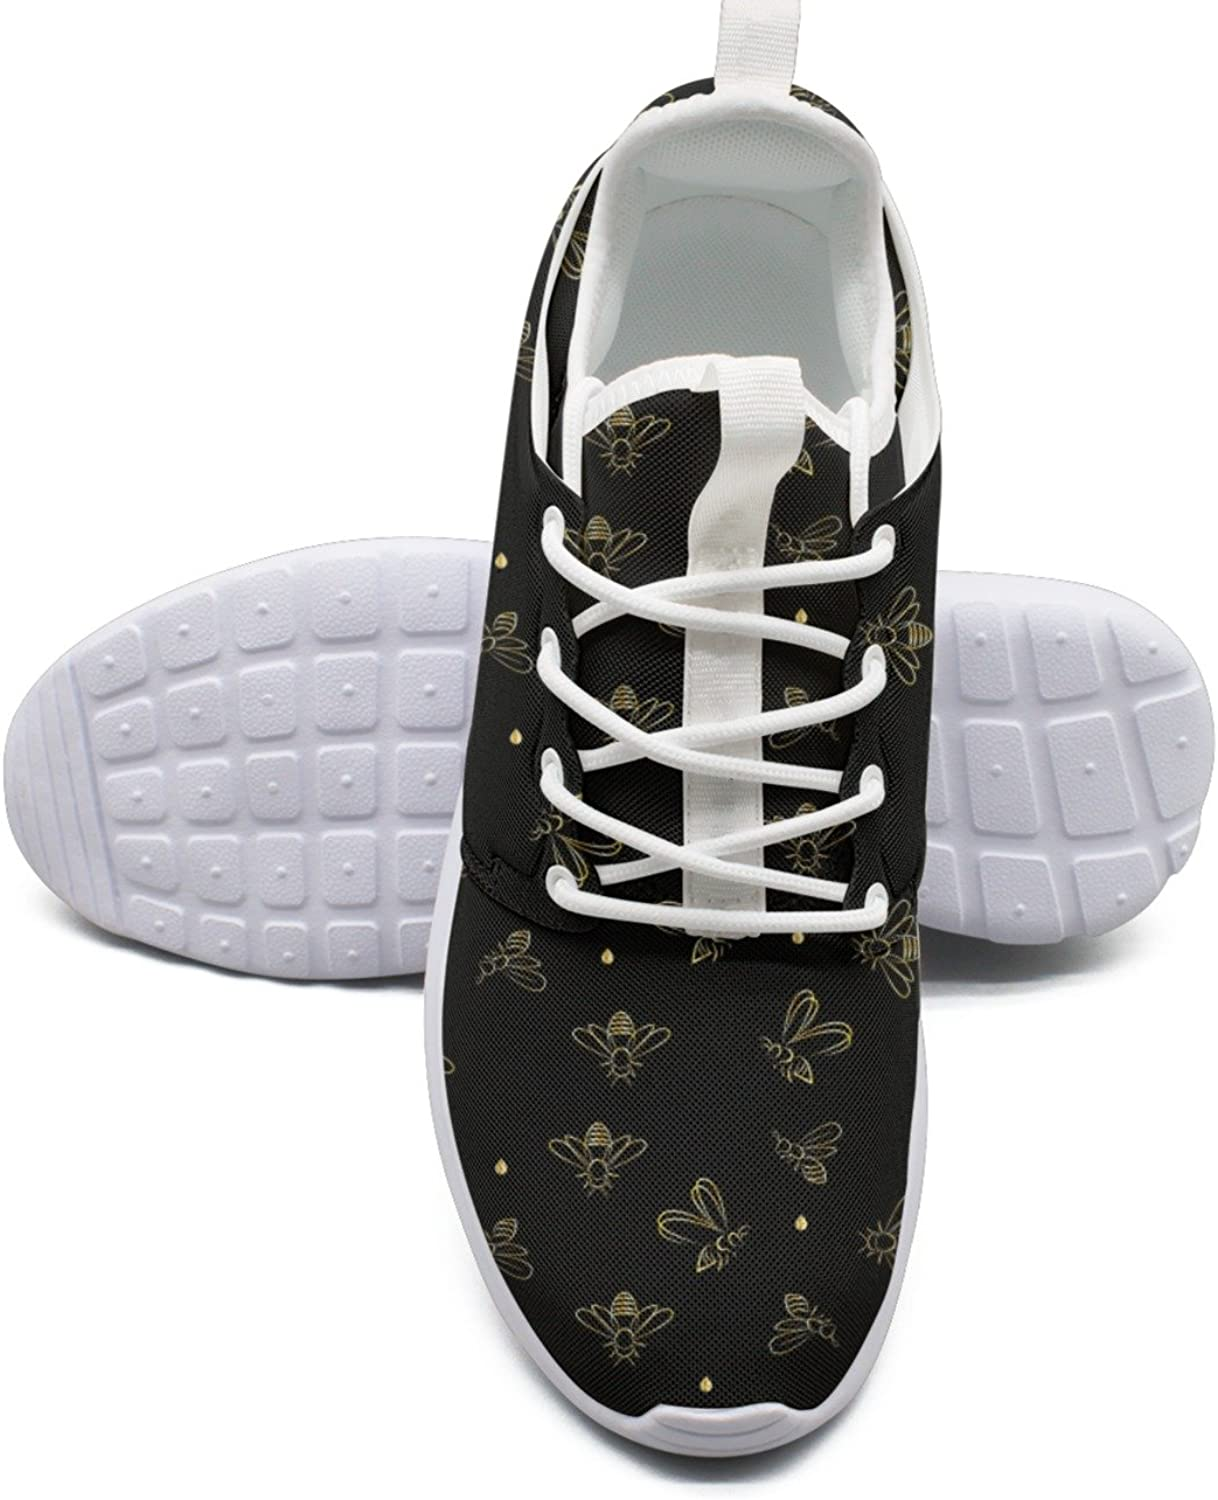 Bees On Black Background Women's Lightweight Mesh Tennis Sneakers Cool Boat shoes